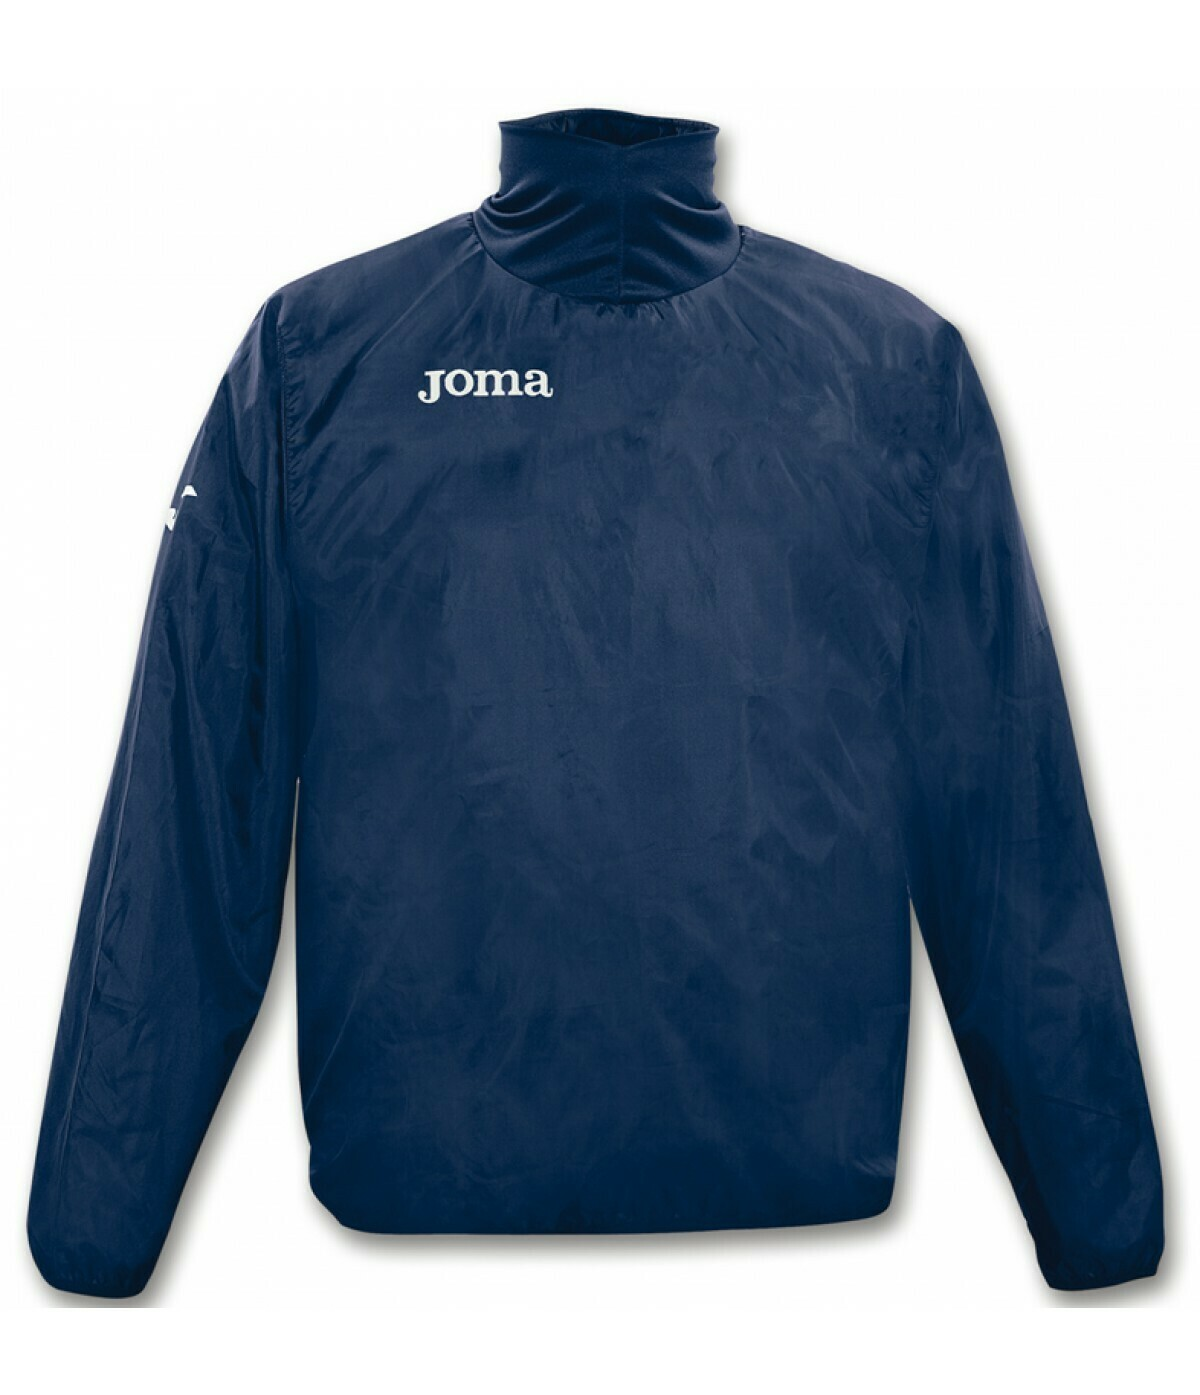 Joma Windbreaker - Adults